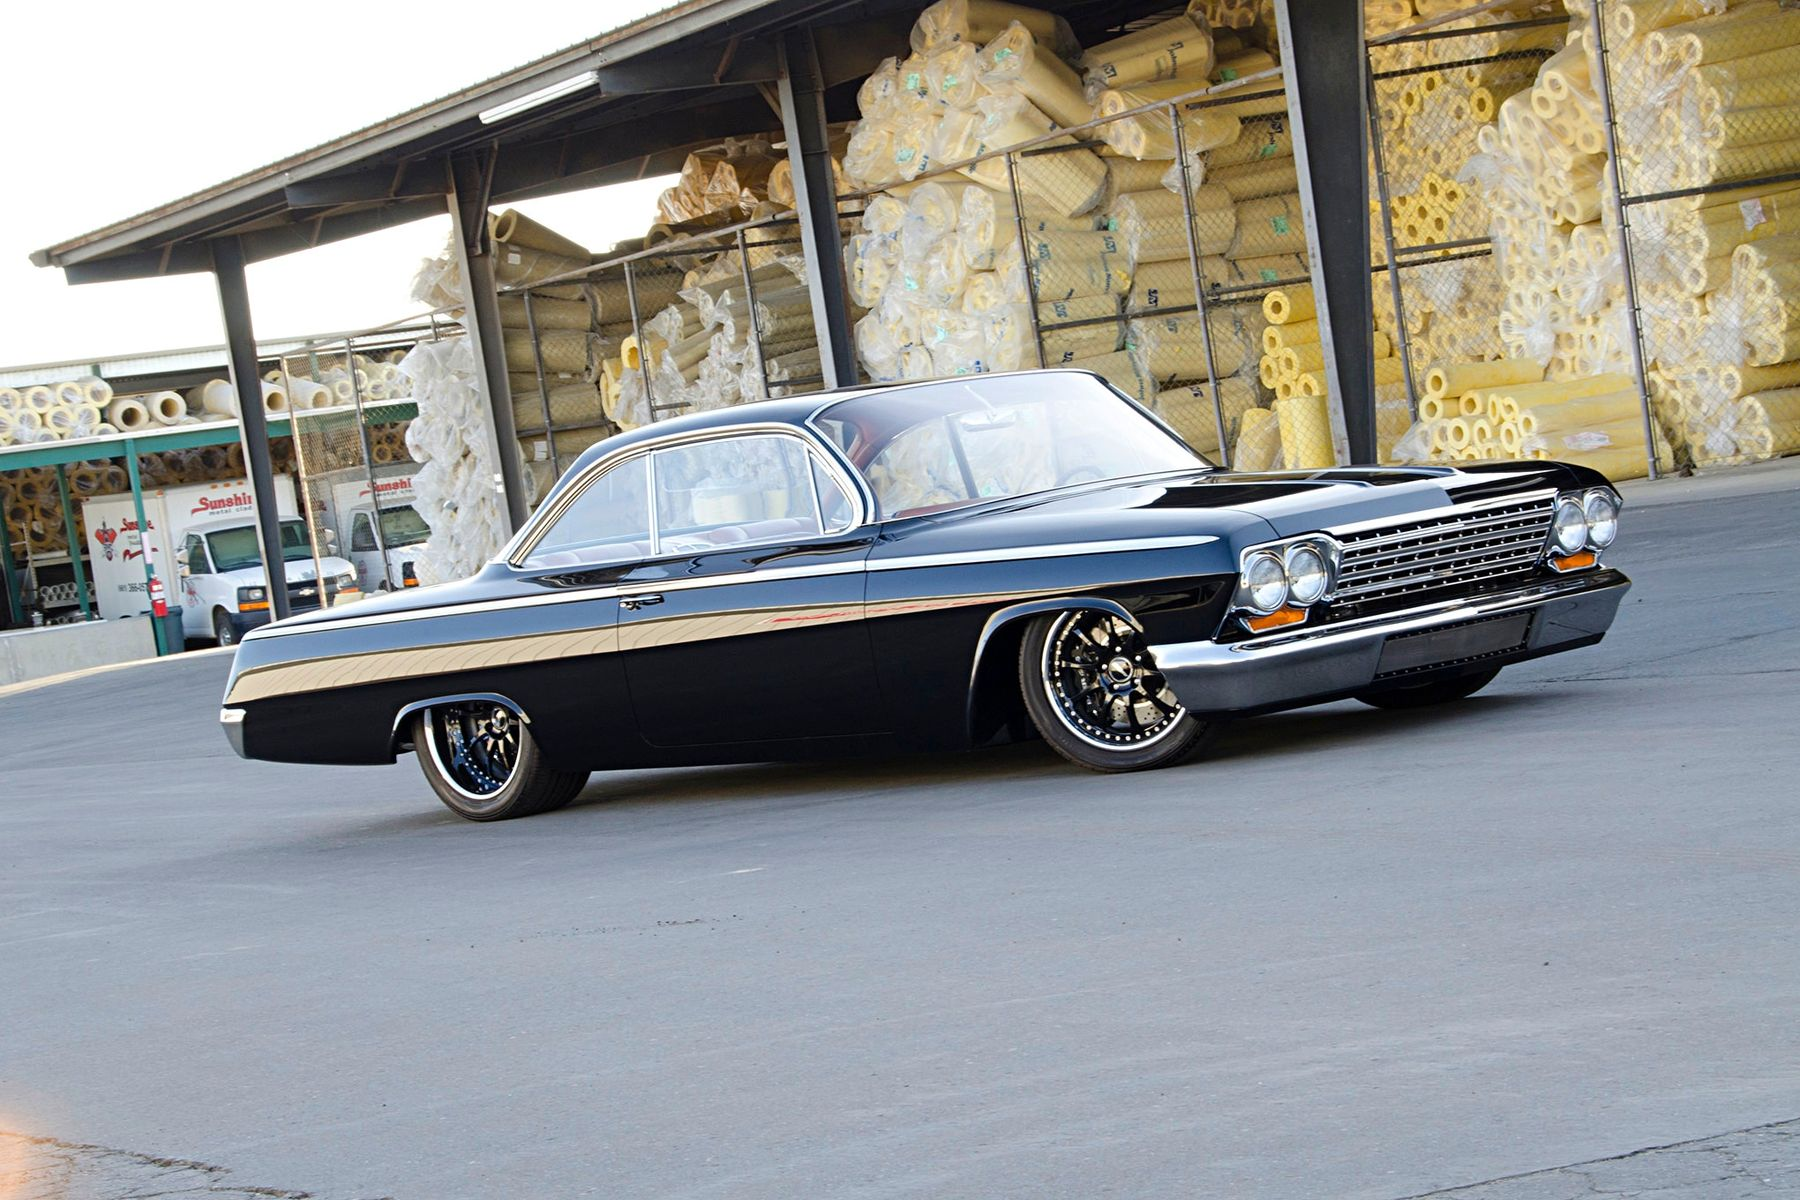 1962 Chevrolet Bel Air | James and Sandy Eudy's '62 Bel Air